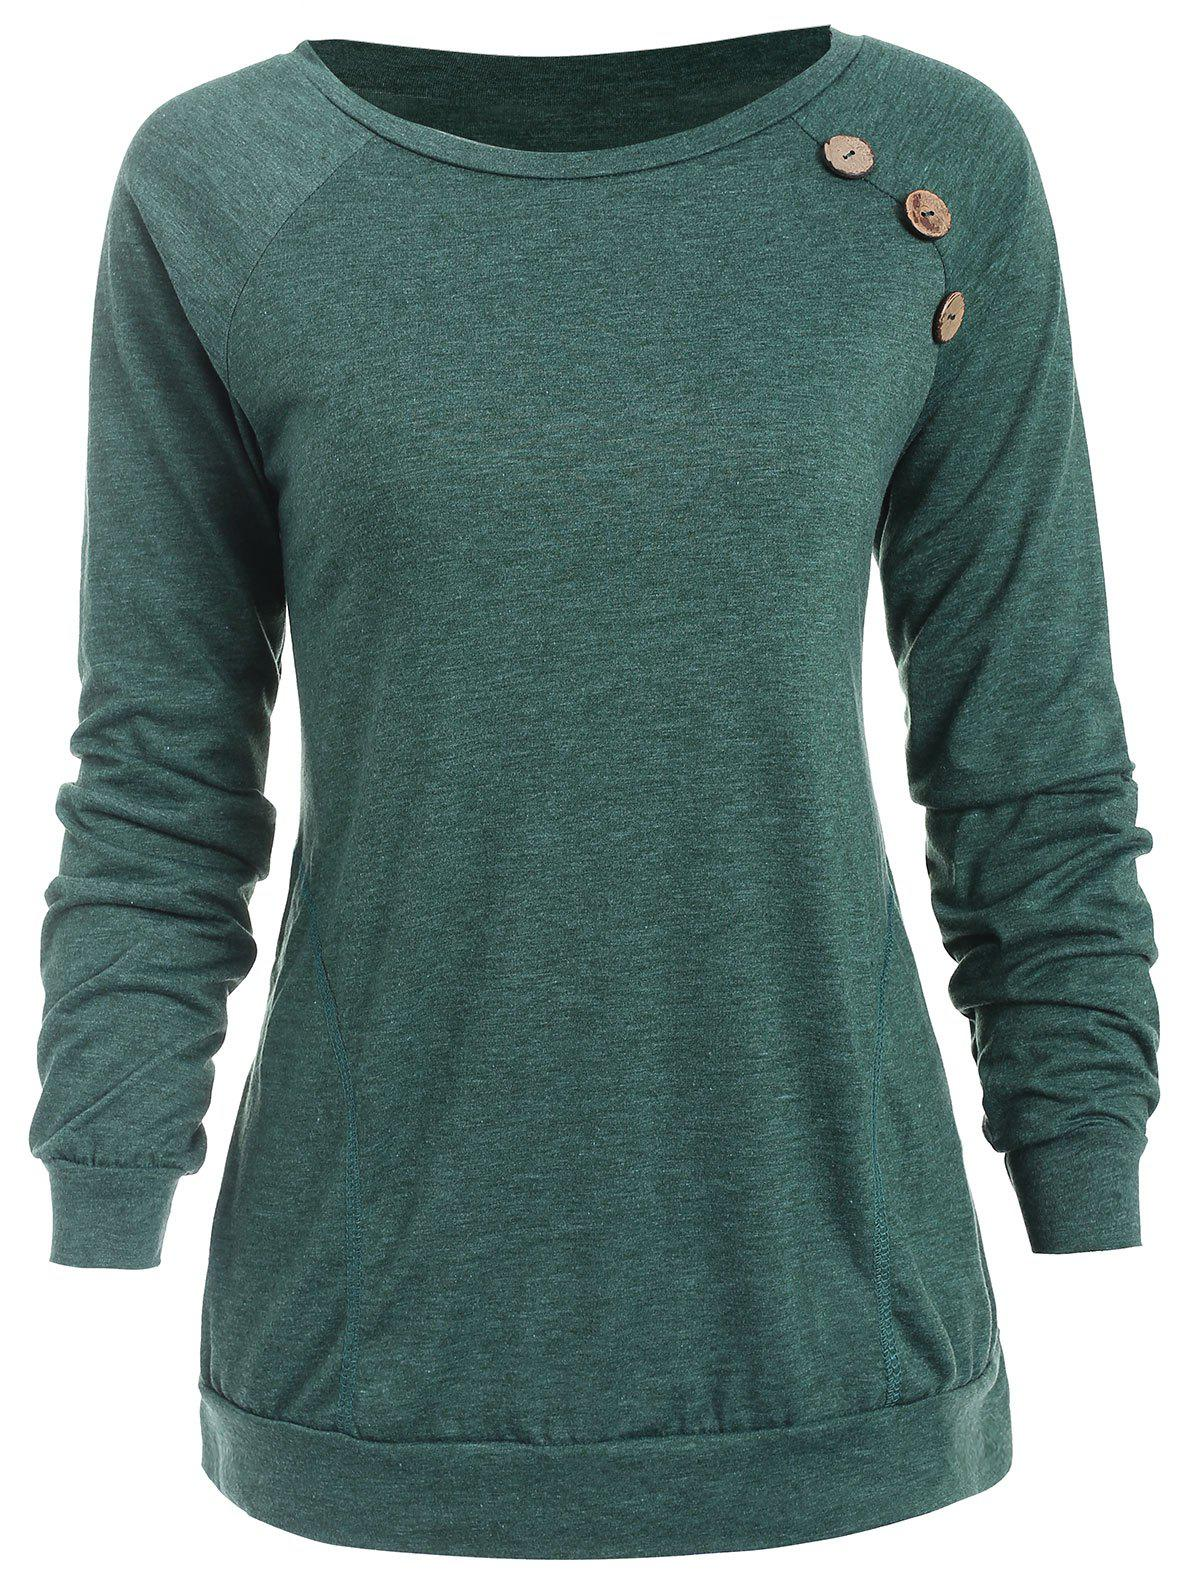 Unique Buttons Embellished Long Sleeve T-shirt